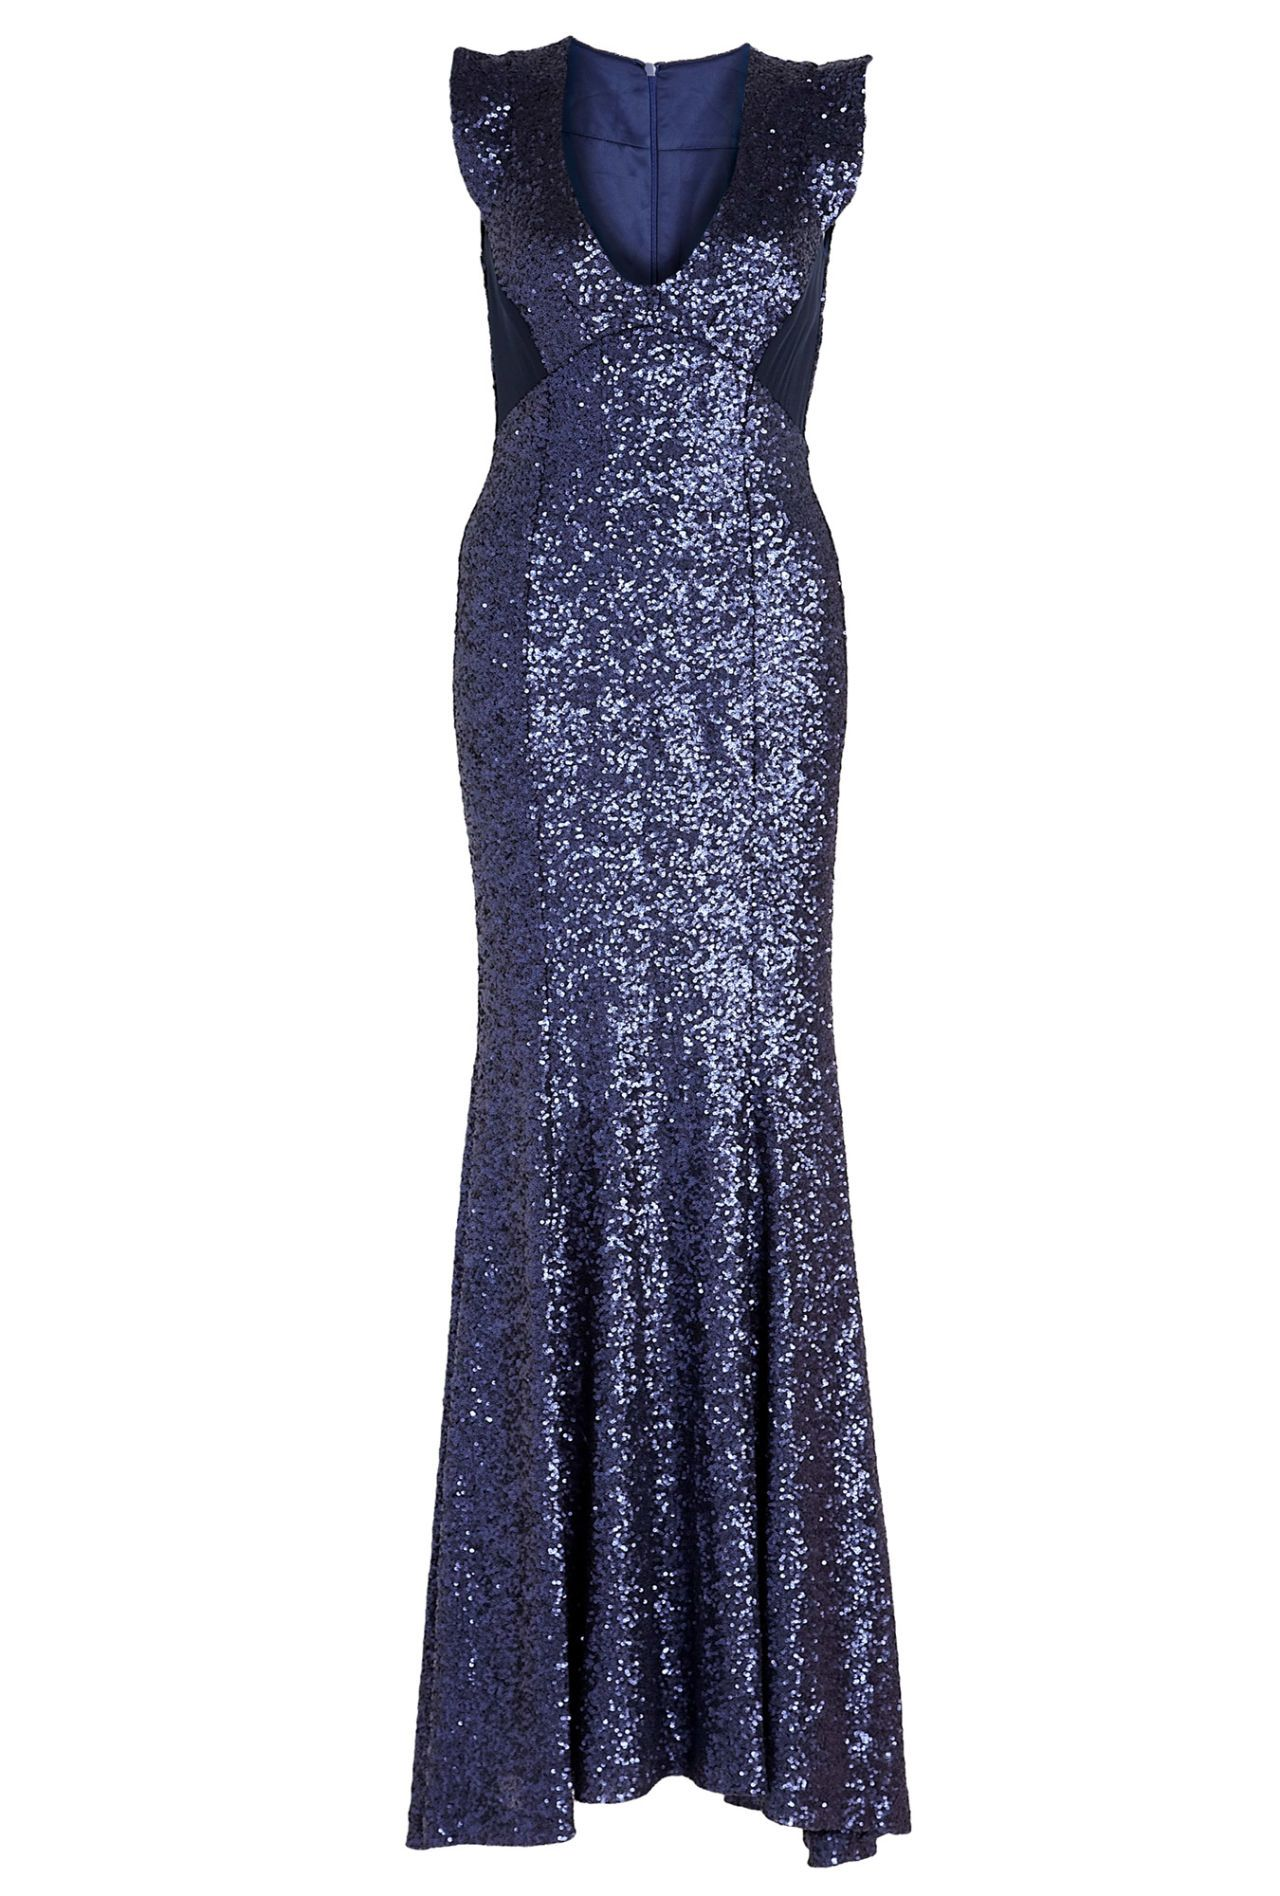 Great Gatsby Dresses - Mary Jane Pumps and Fringe Dresses